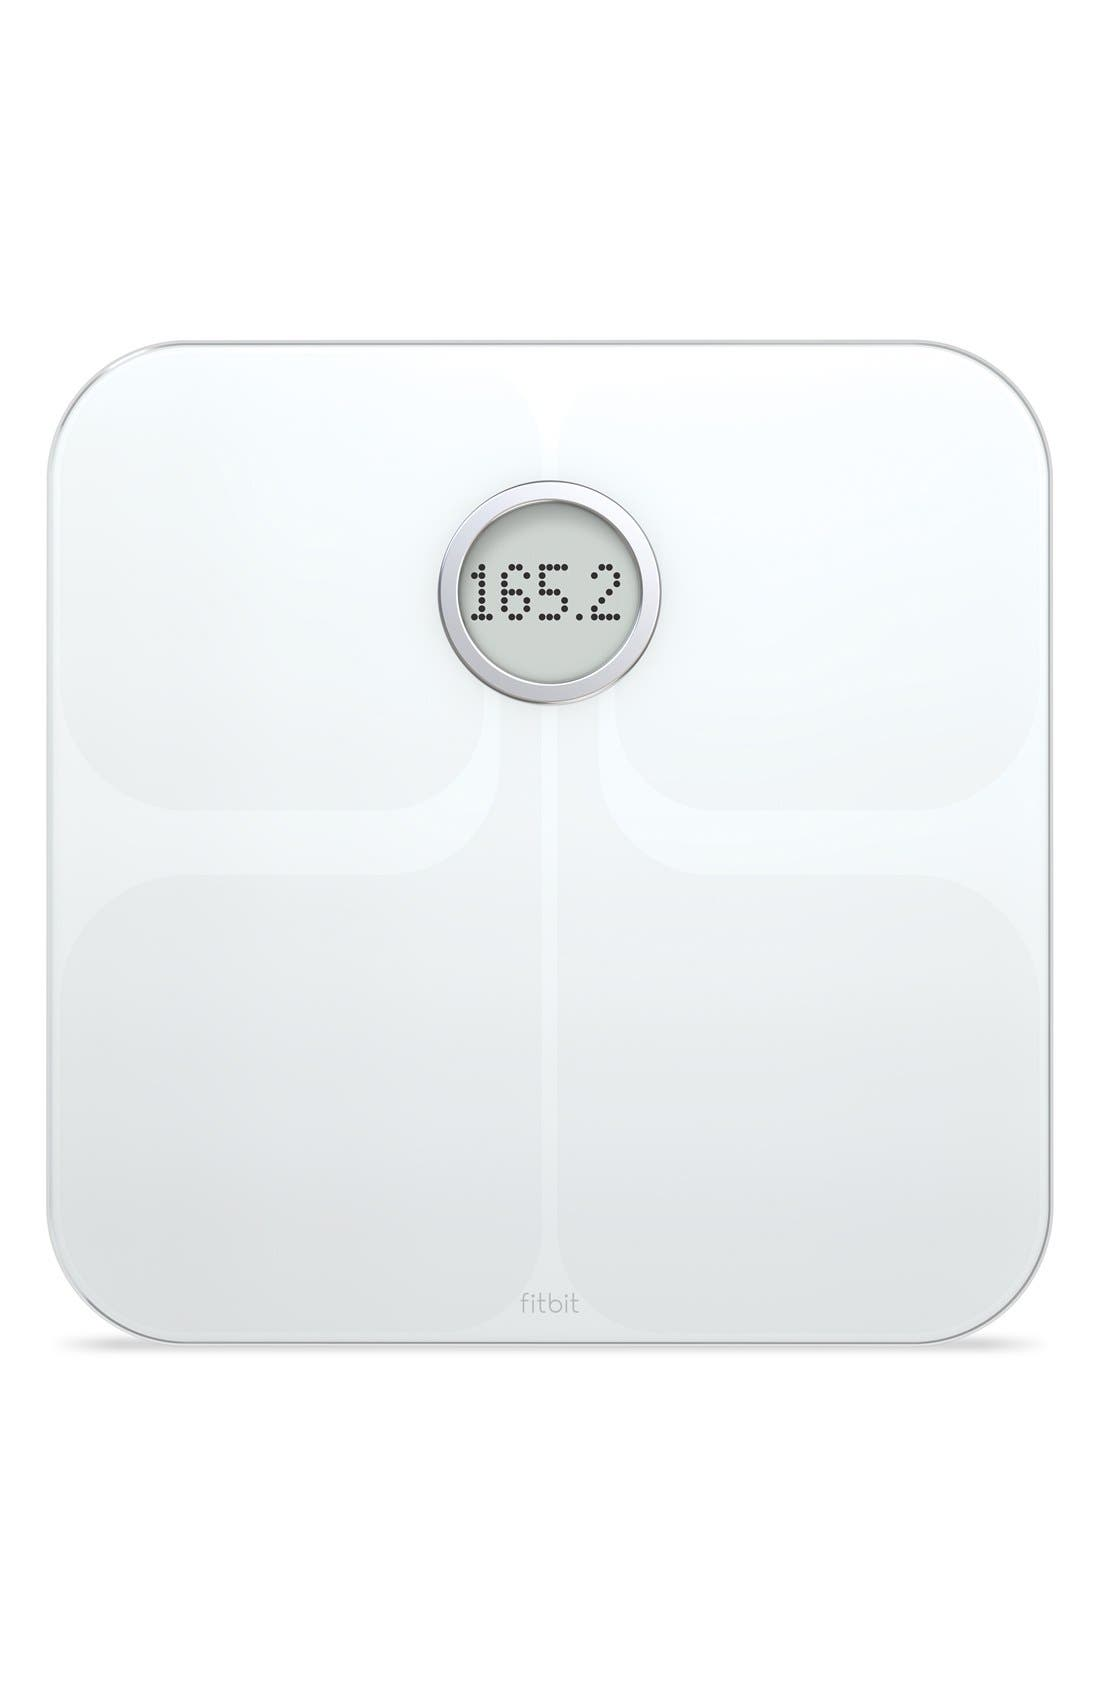 Alternate Image 1 Selected - Fitbit 'Aria' Wireless Smart Scale